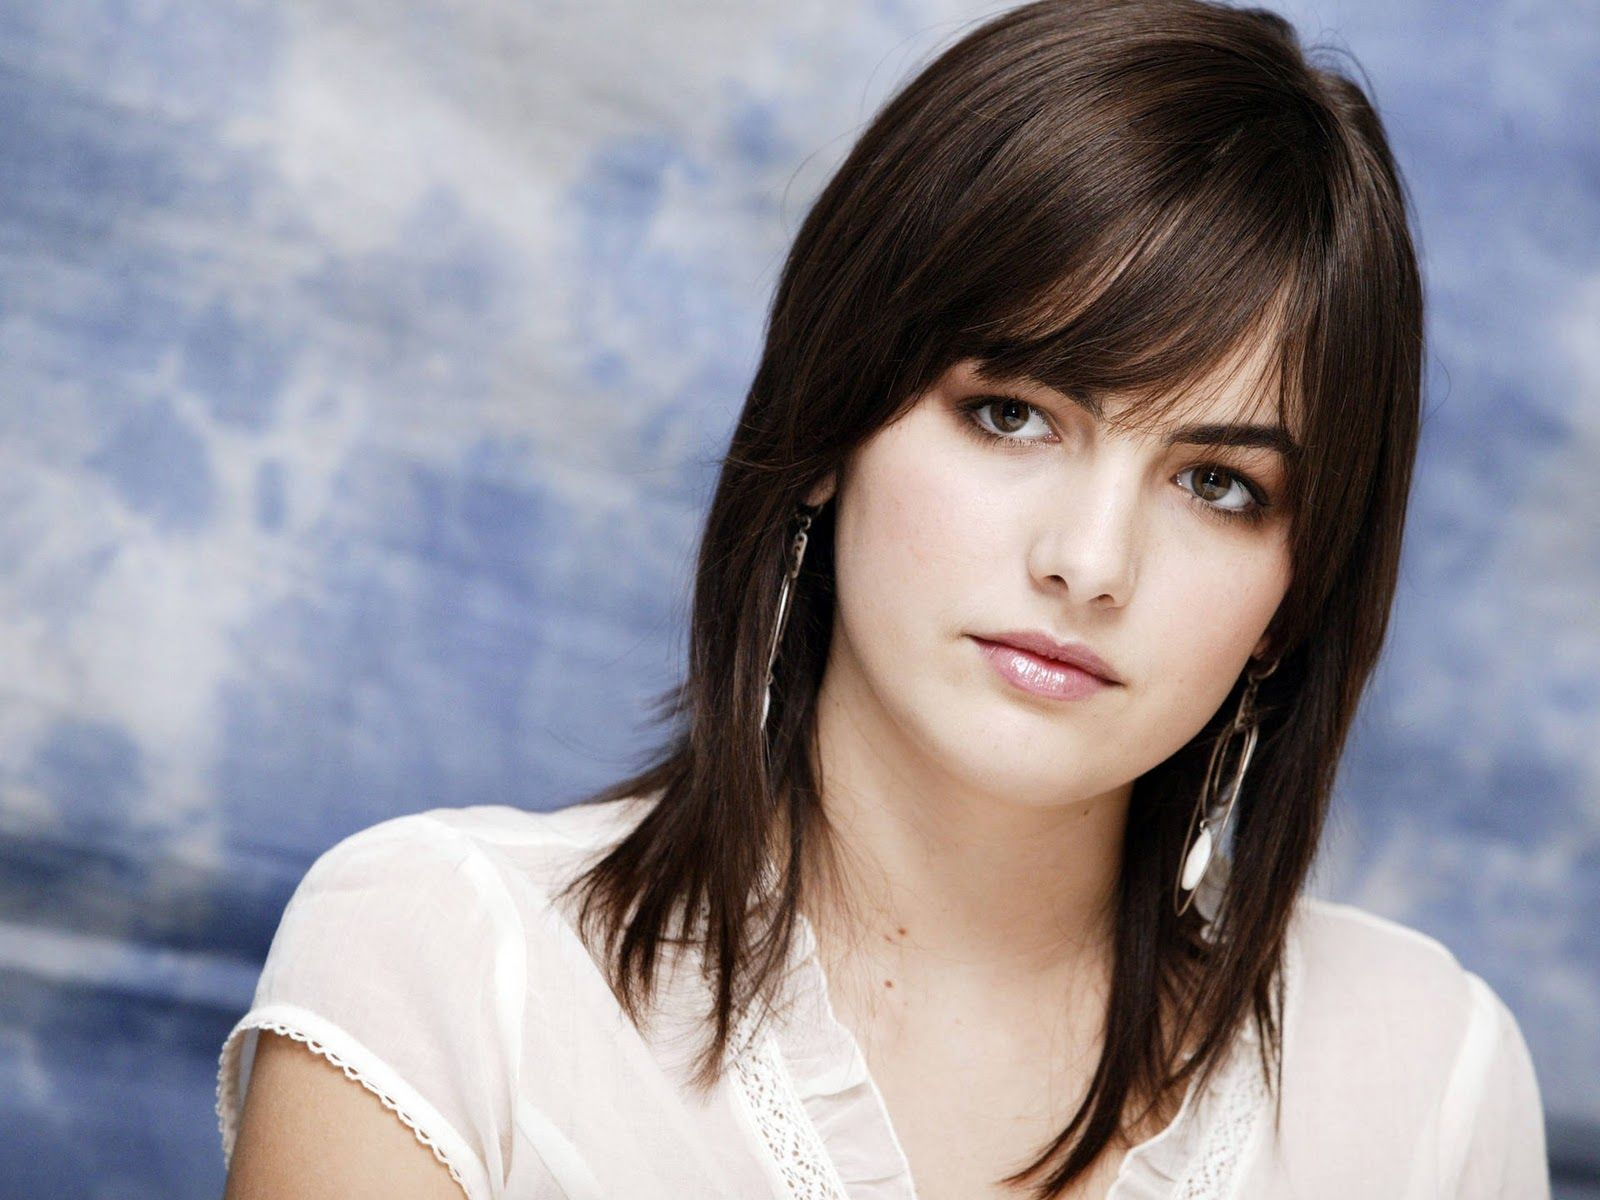 Hollywood actress wallpapers find best latest hollywood - Actress wallpaper download for mobile ...